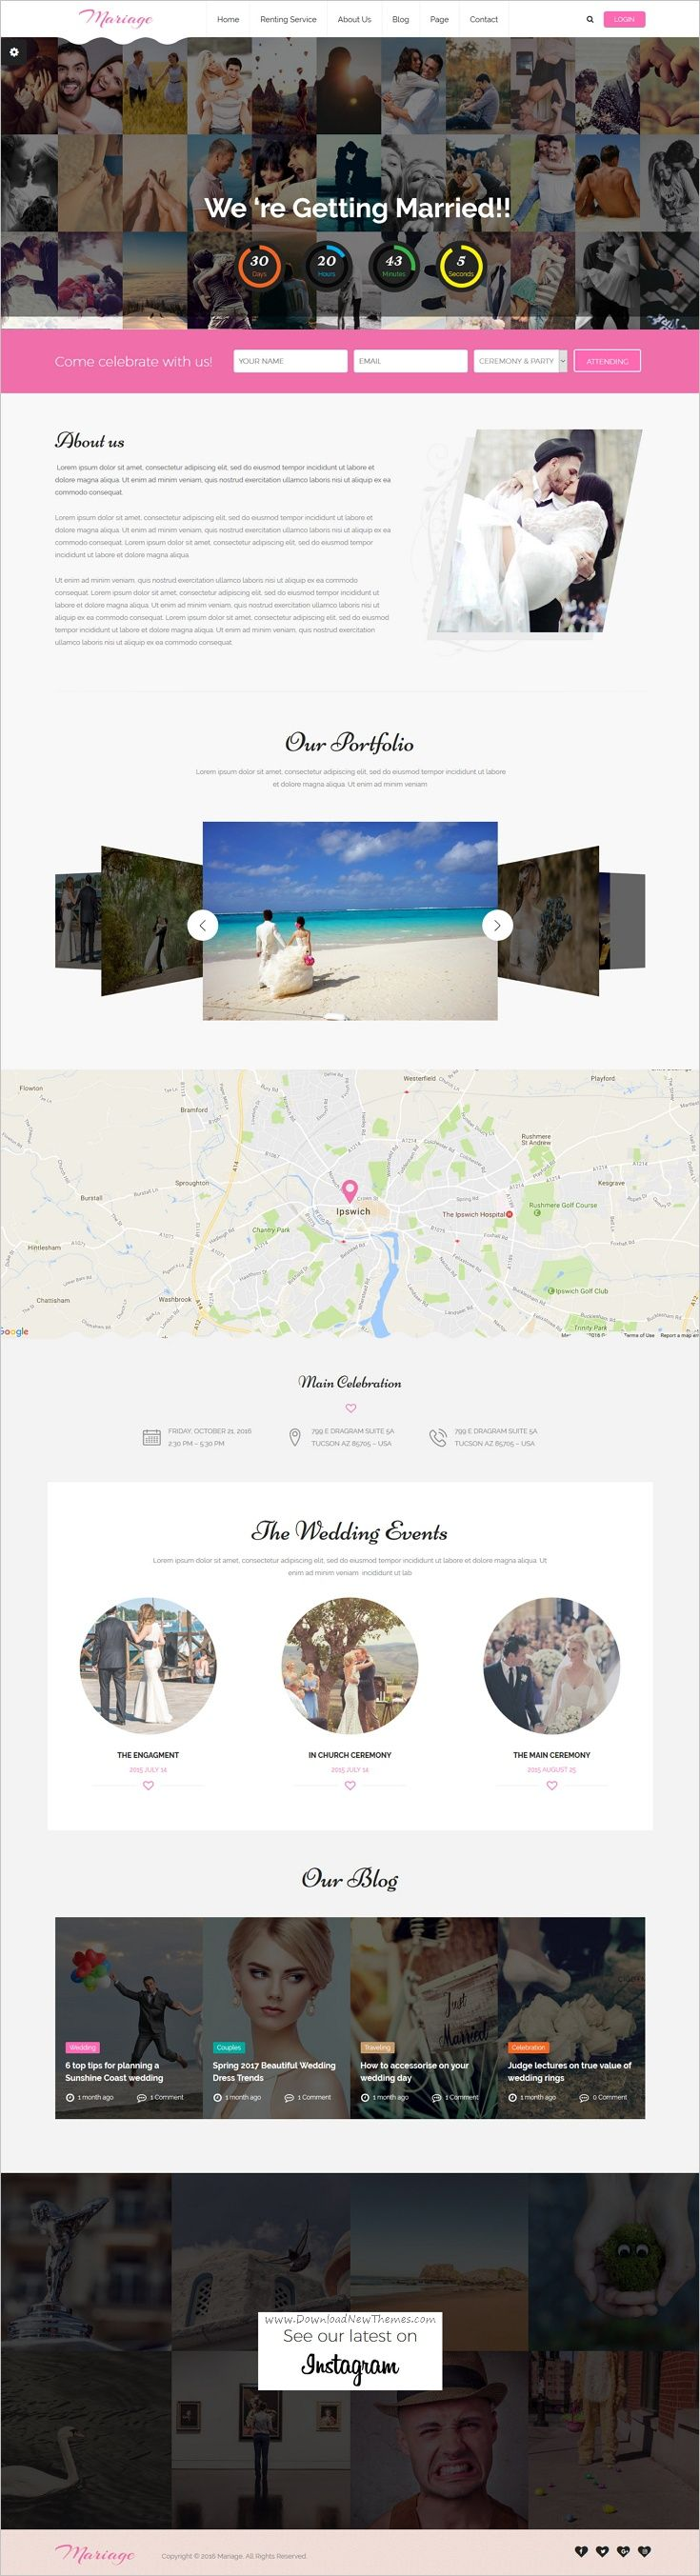 Mariage is a clean and modern design #responsive 5in1 #WordPress theme for stunning #wedding events website download now➩   https://themeforest.net/item/mariage-business-wedding-wordpress-theme/17937630?ref=Datasata